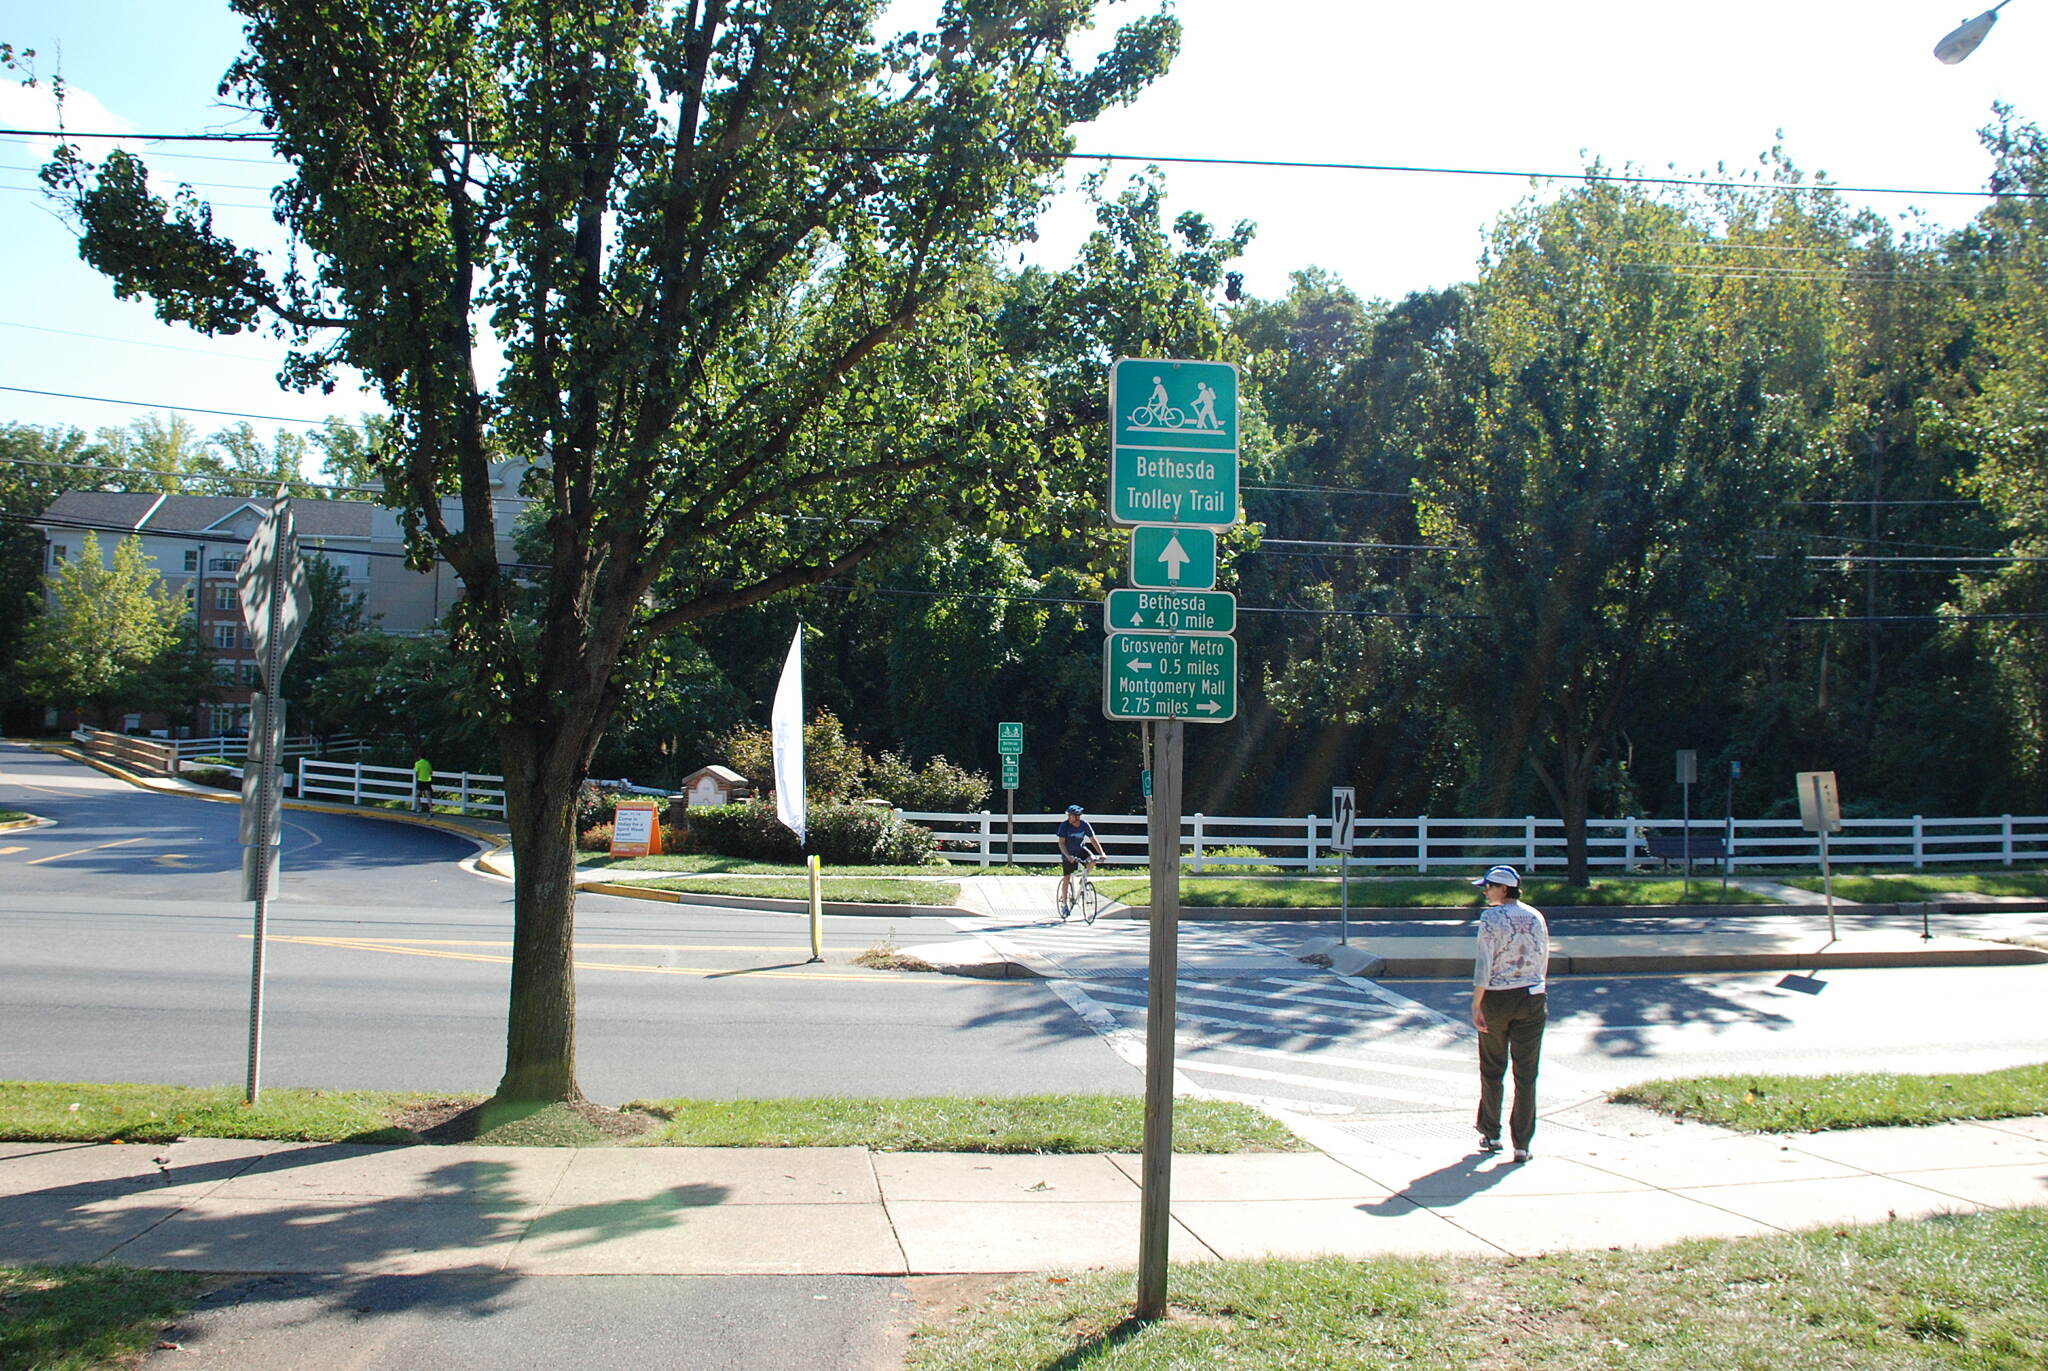 Bethesda Trolley Trail BTT5